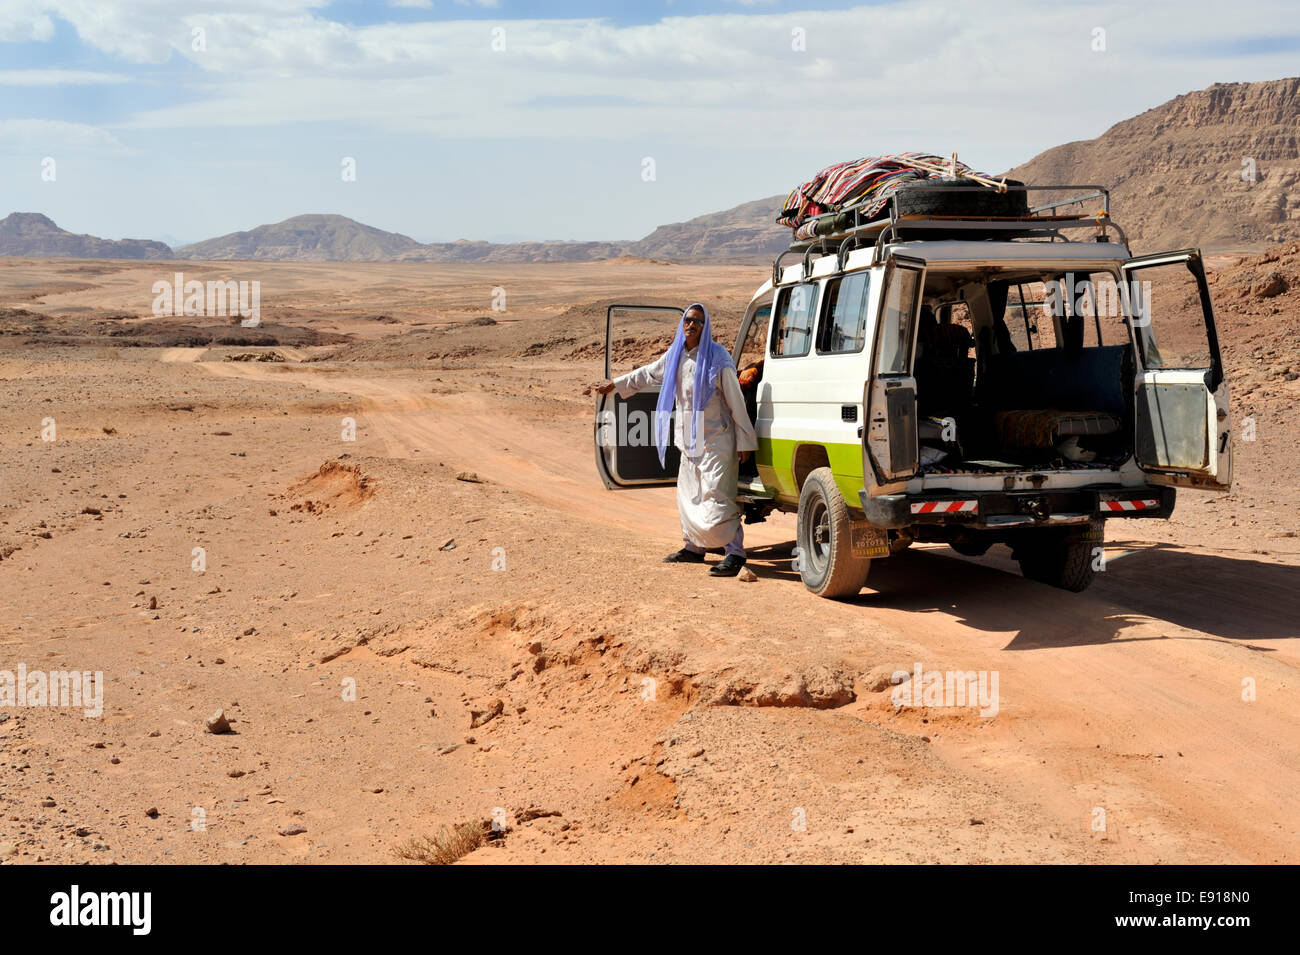 Bedouin Arab man with 4 wheel drive car on off road track in south Sinai desert, Egypt Stock Photo